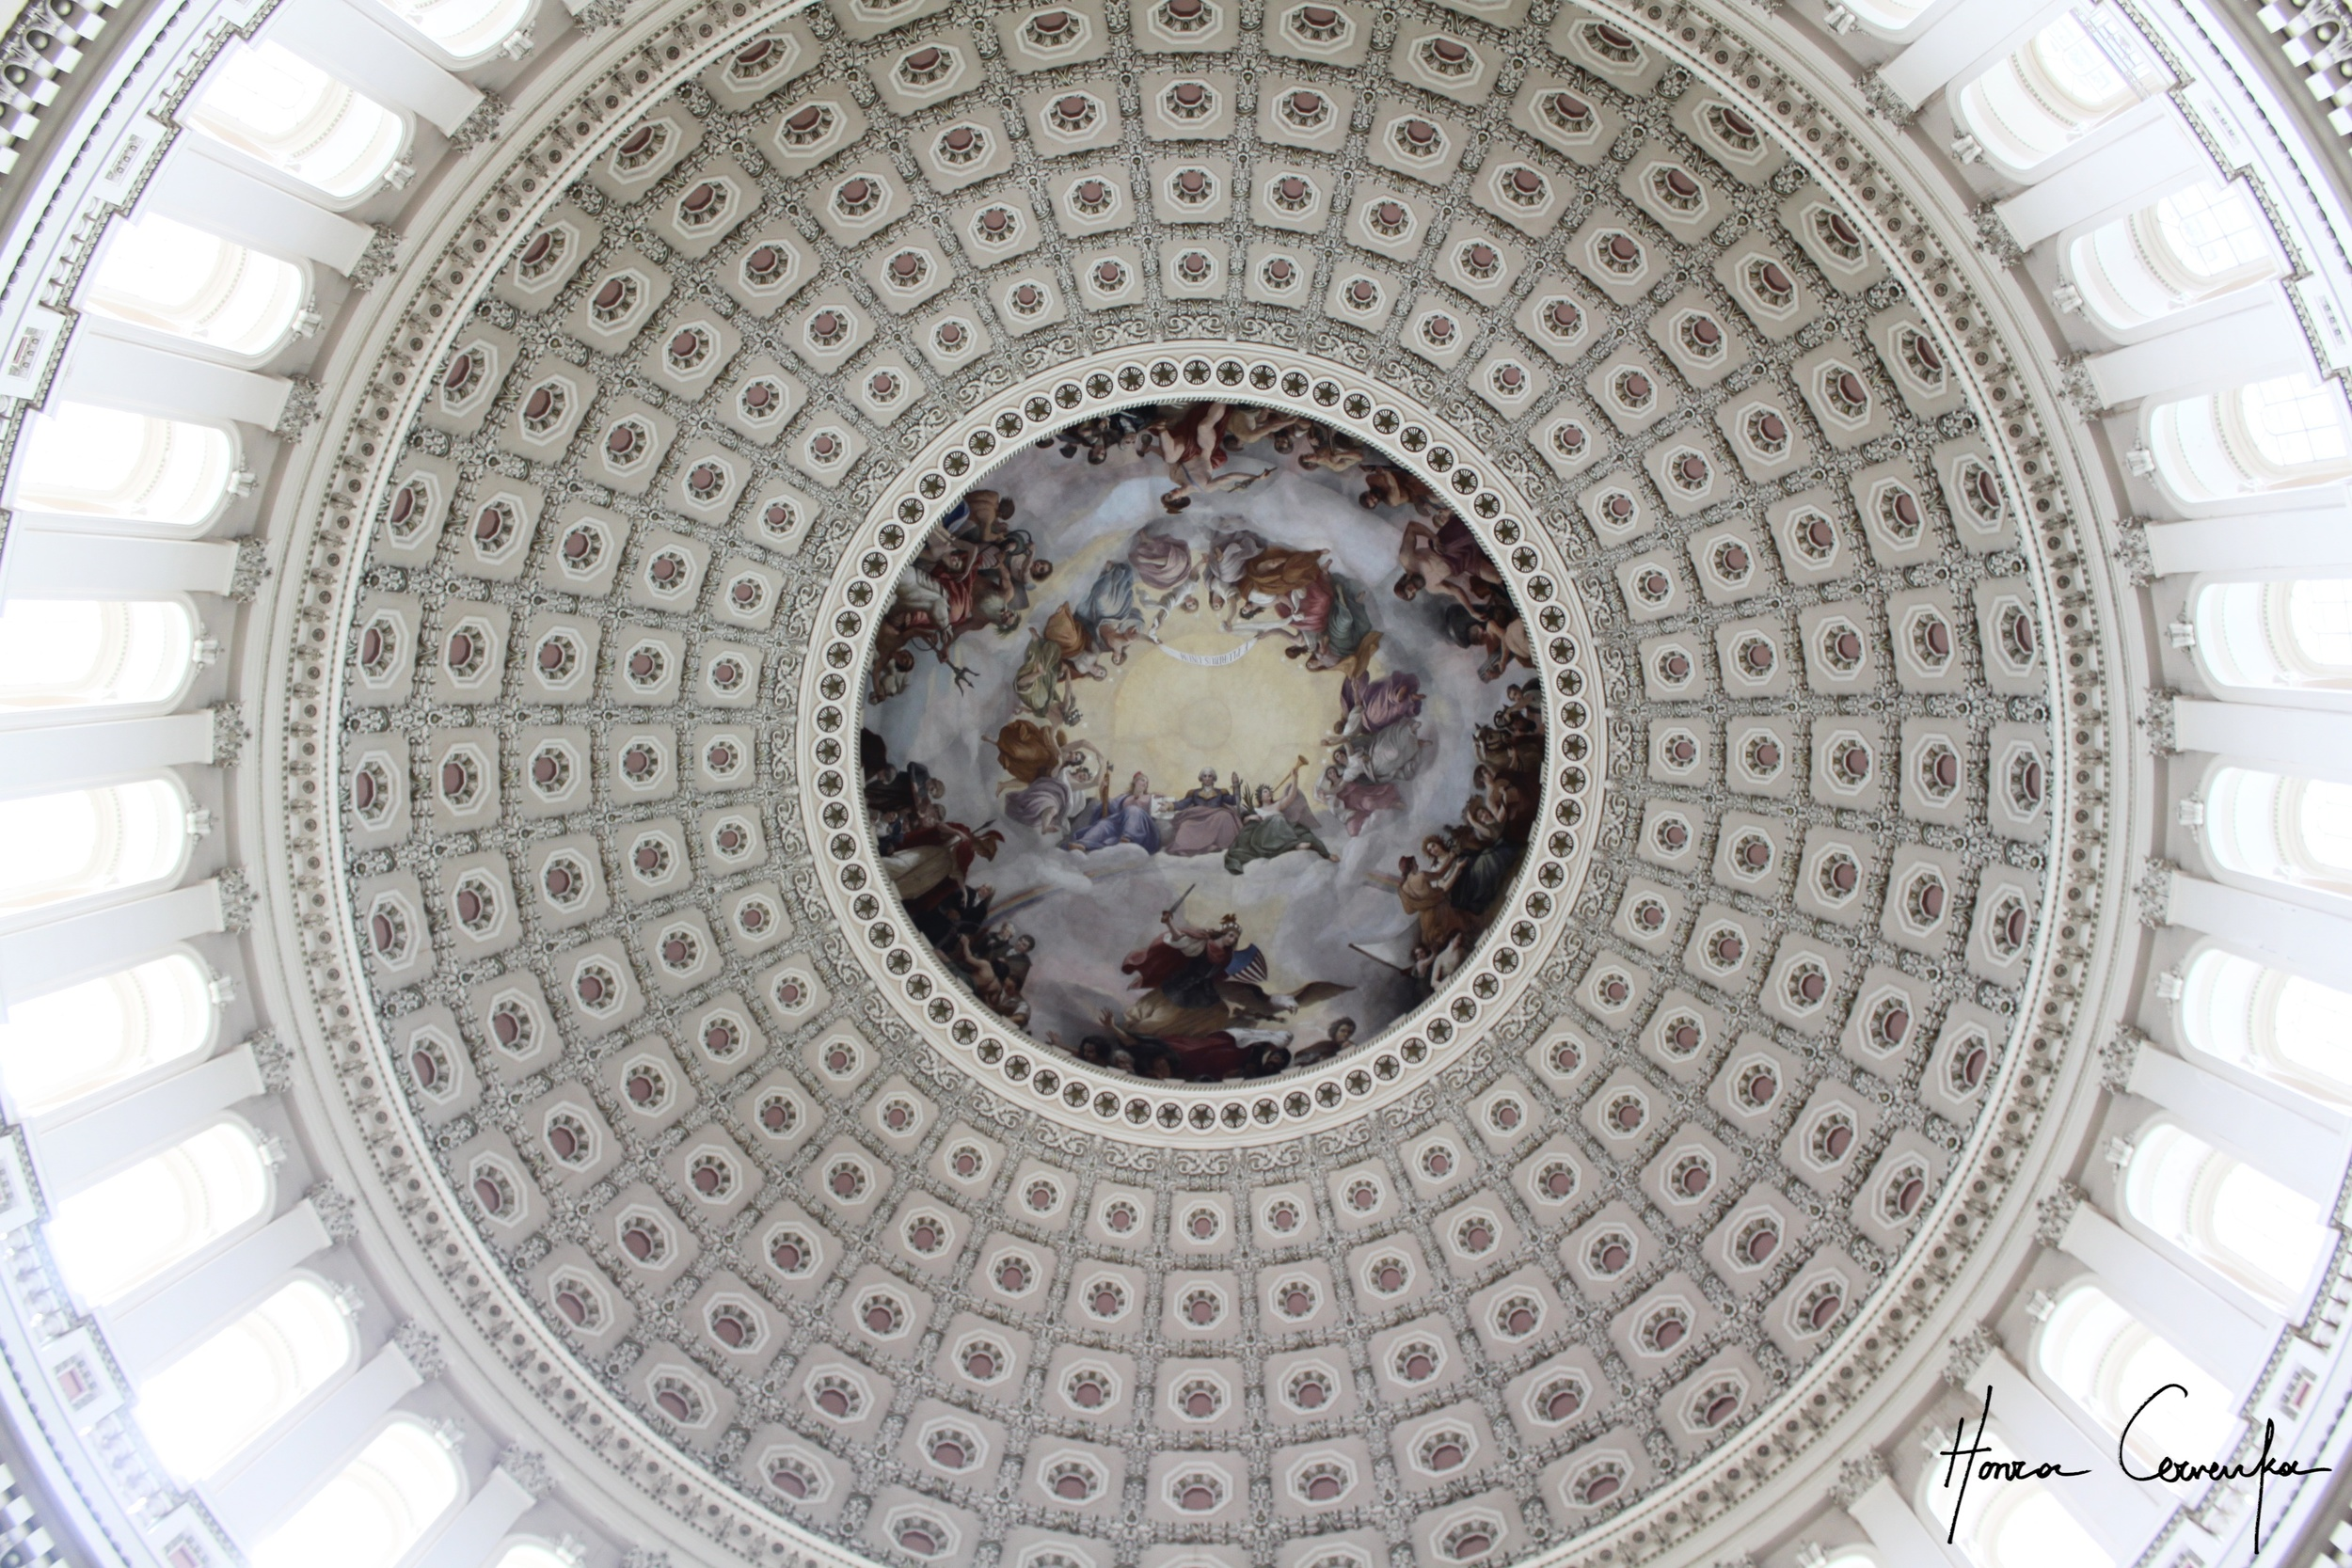 the Capitol, Washington, District of Columbia, 2010